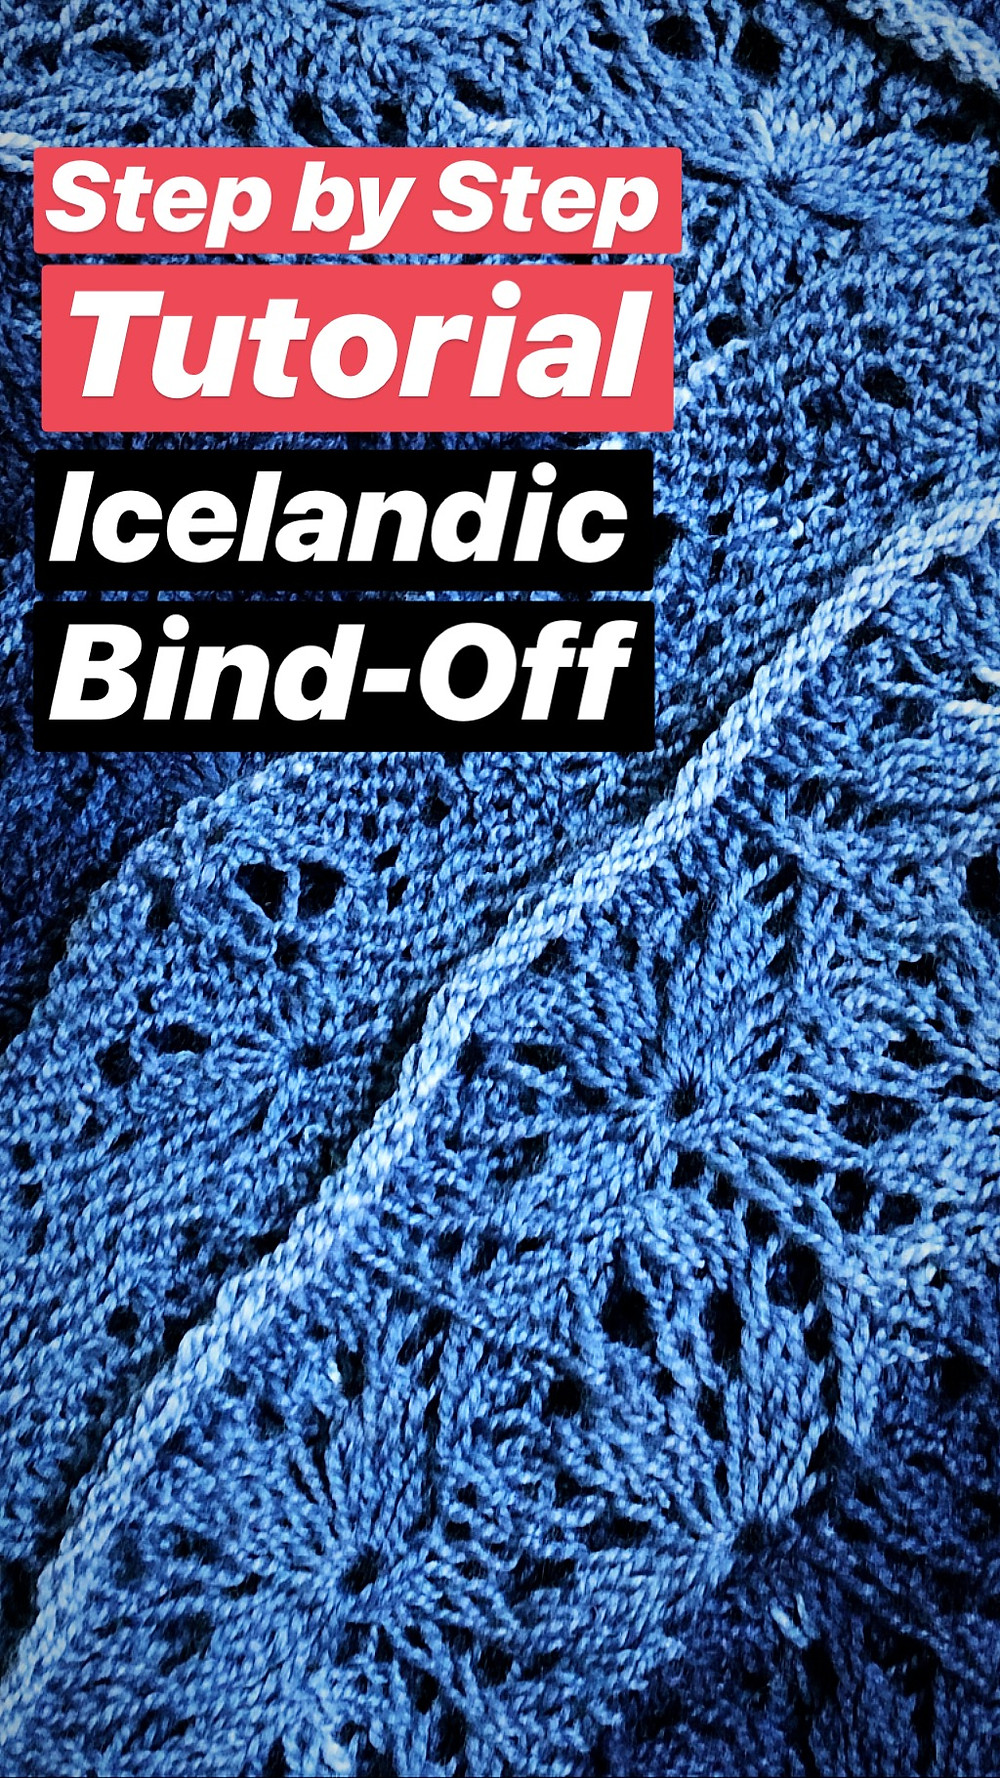 Step by Step Icelandic Bind-Off Knitting Tutorial